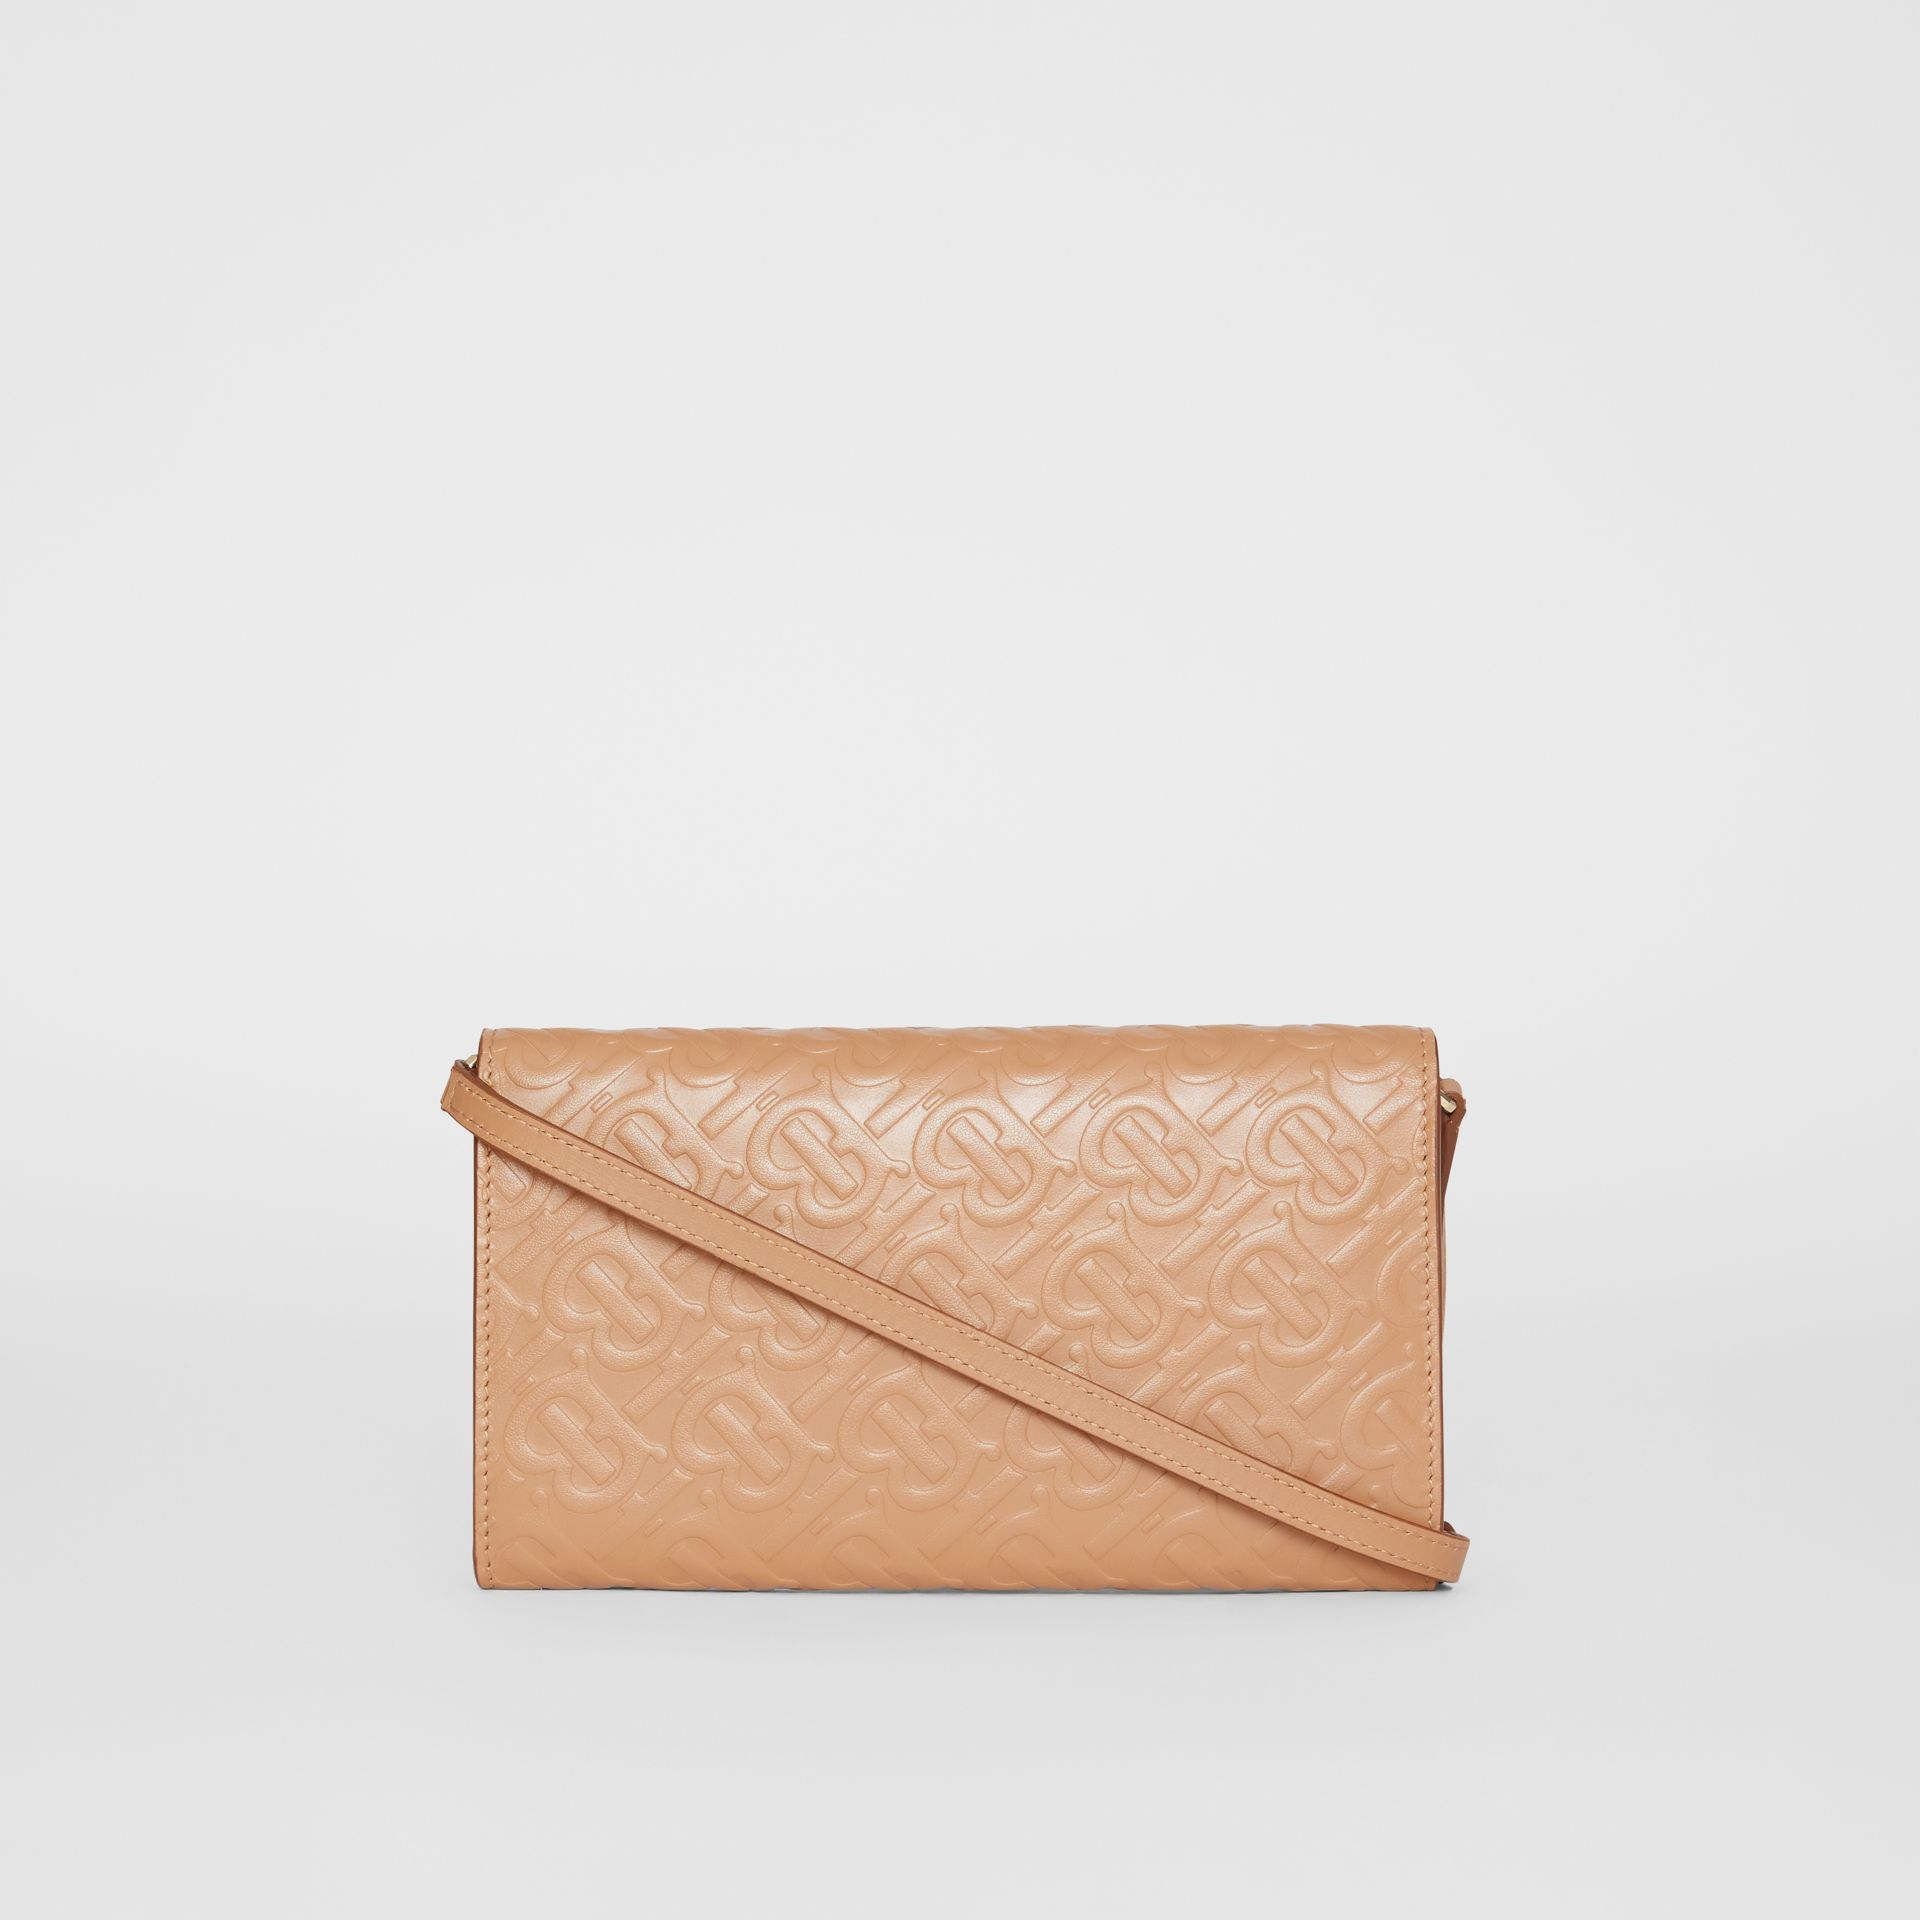 Monogram Leather Wallet with Detachable Strap in Light Camel - Women | Burberry - gallery image 7